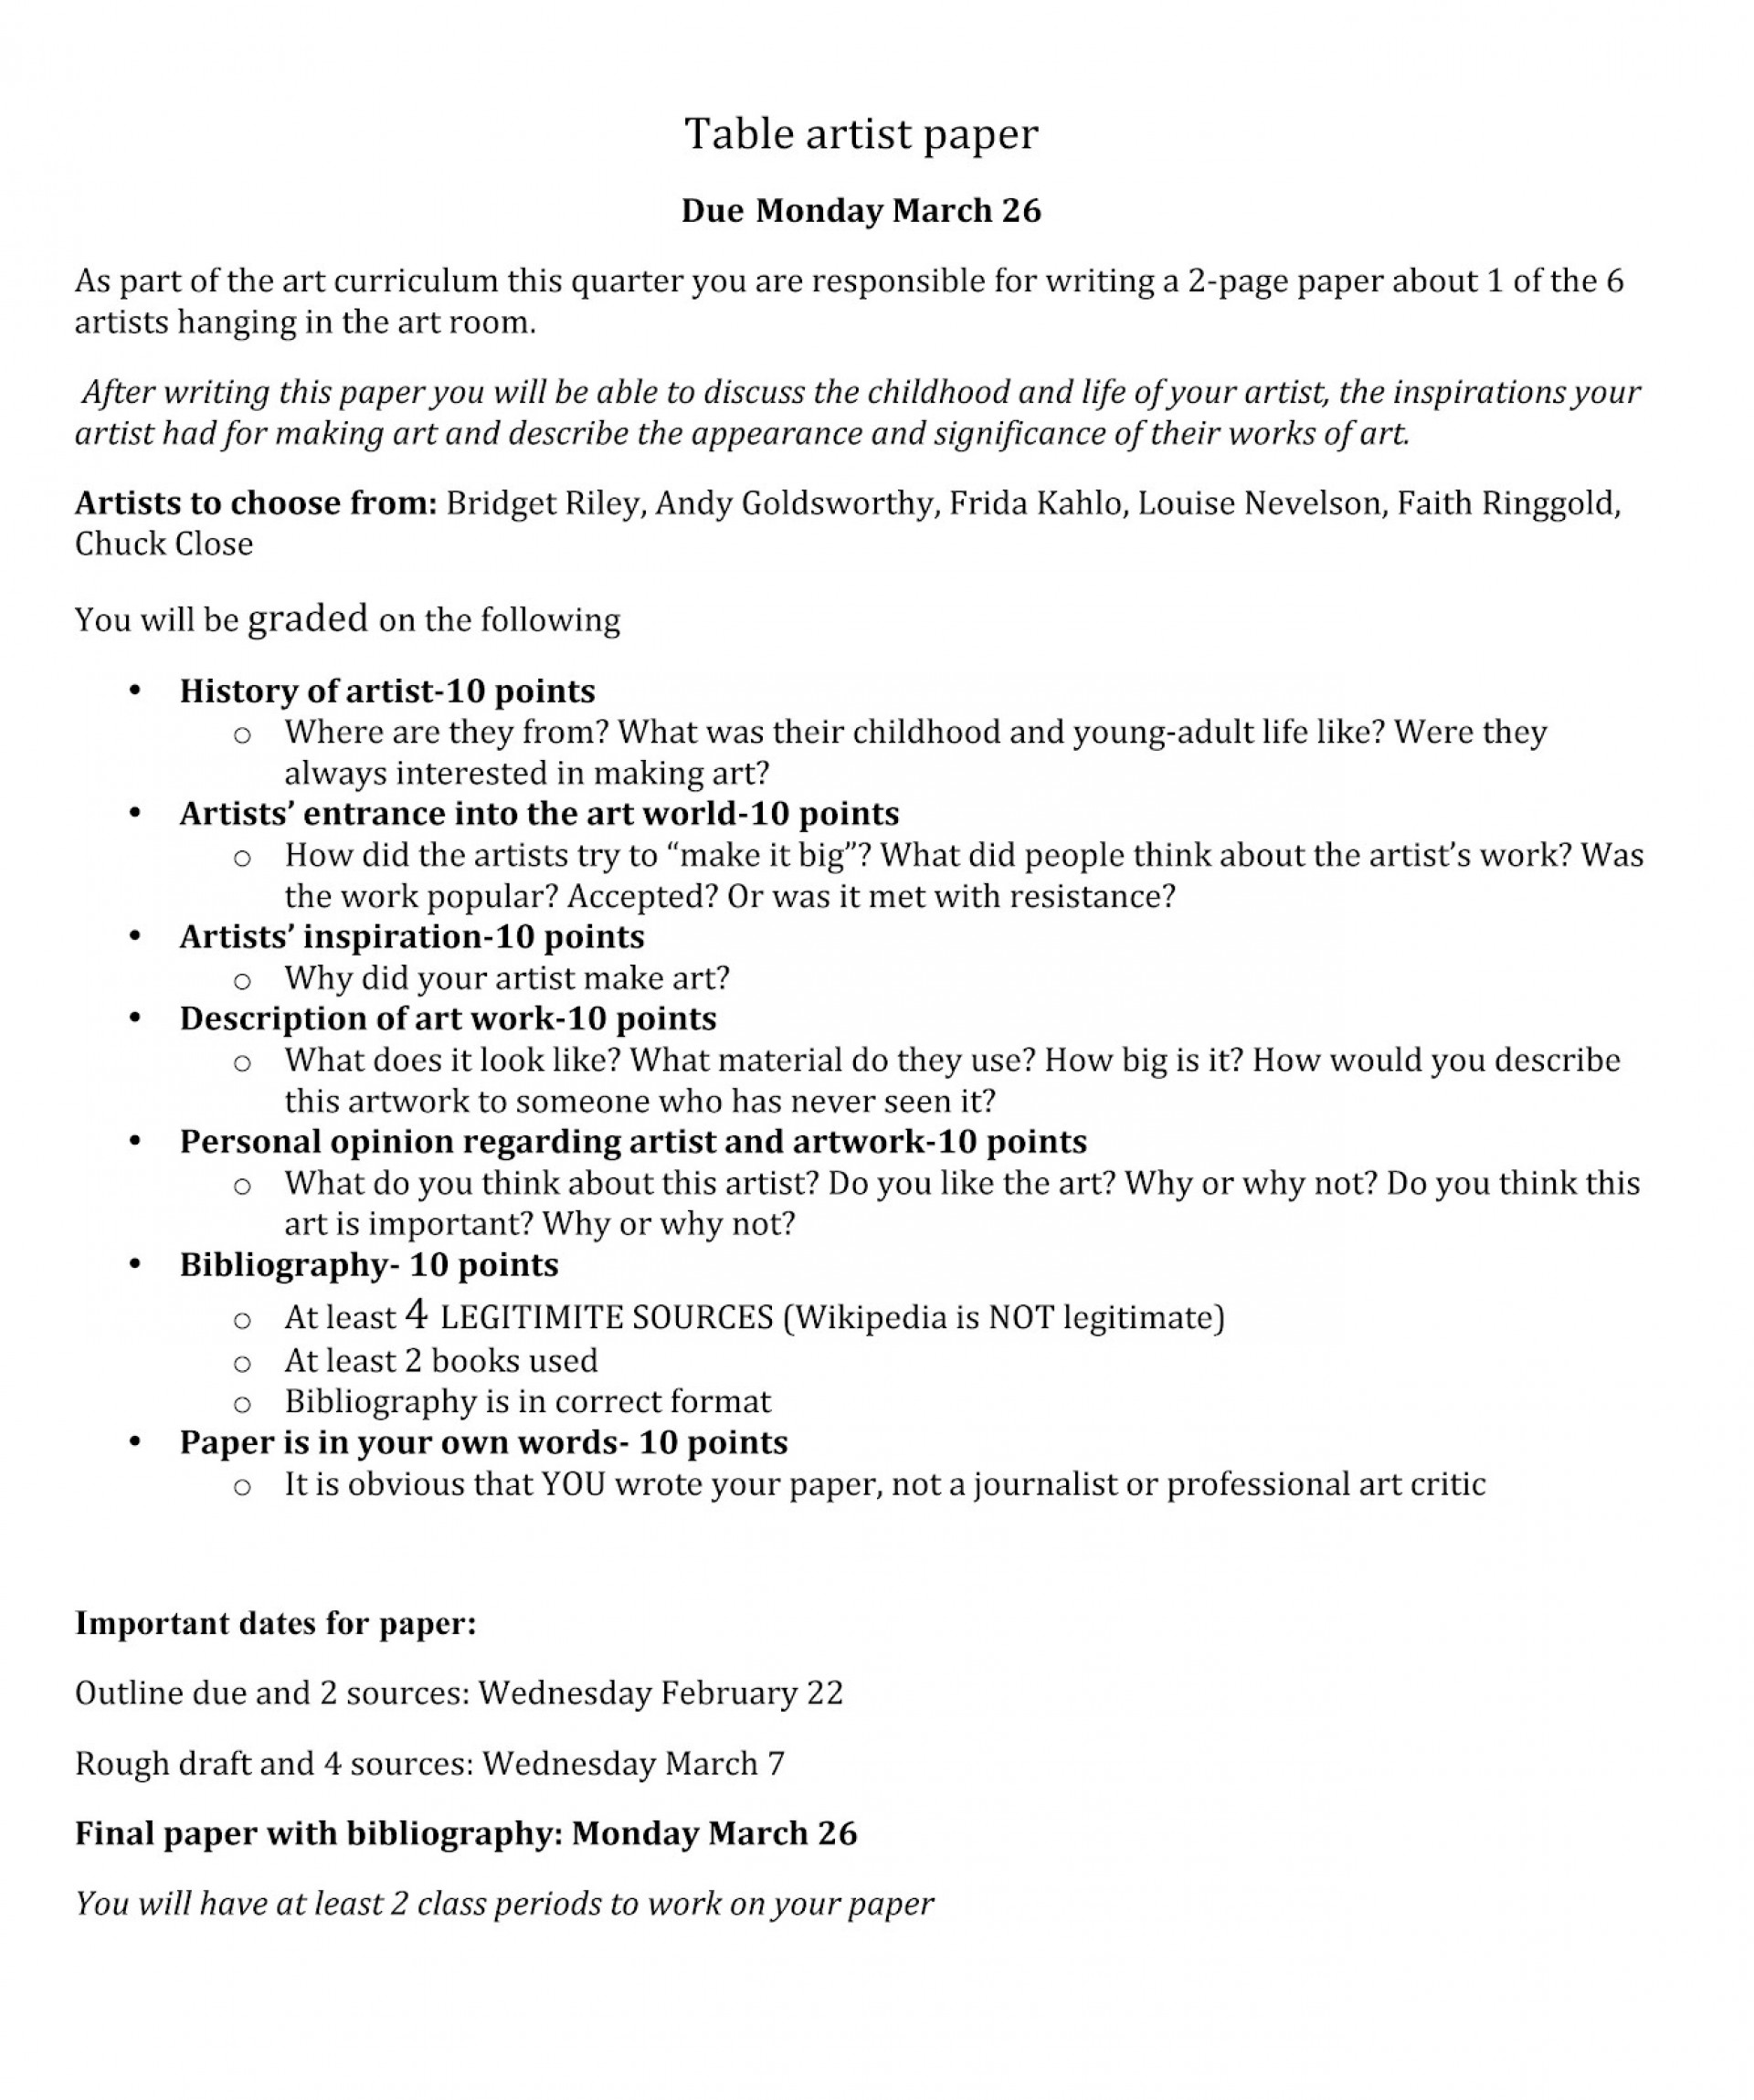 015 Table20artist20paper Essay Example Outline Impressive Guide Layout Mini-q Answers Dbq 1920